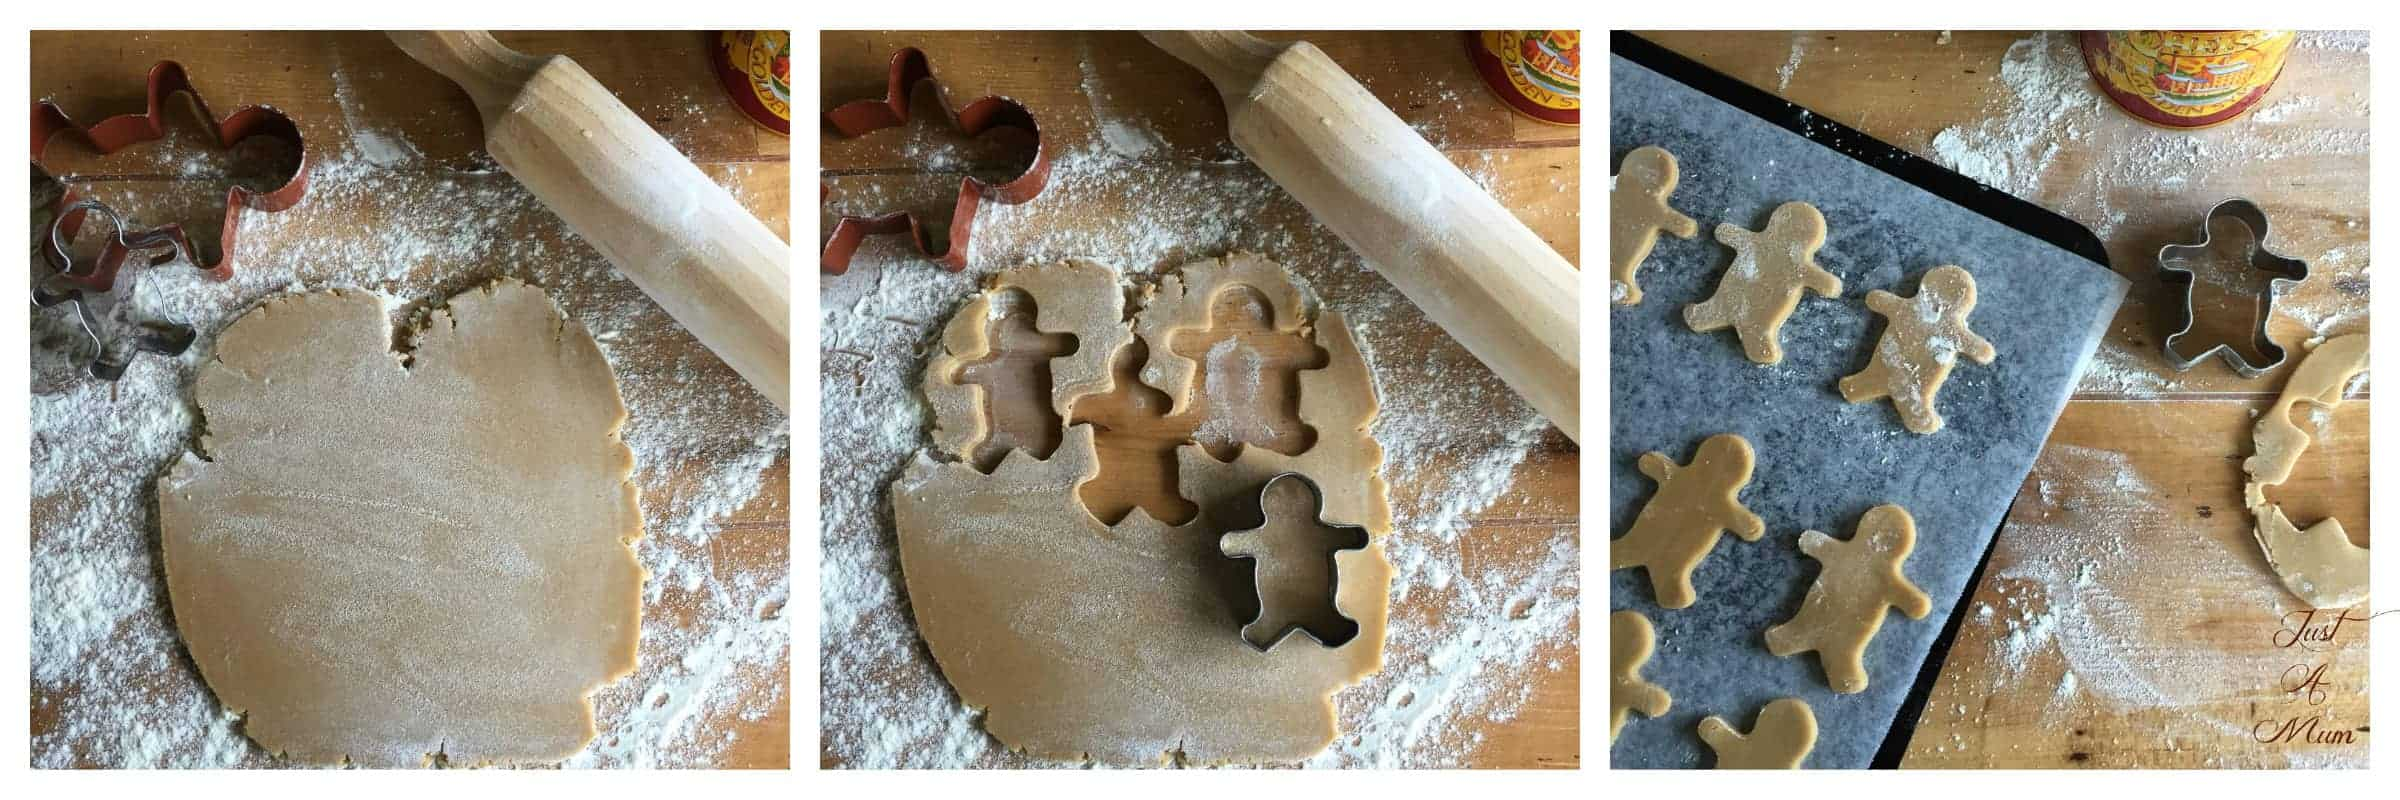 Just A Mum's Gingerbread Men